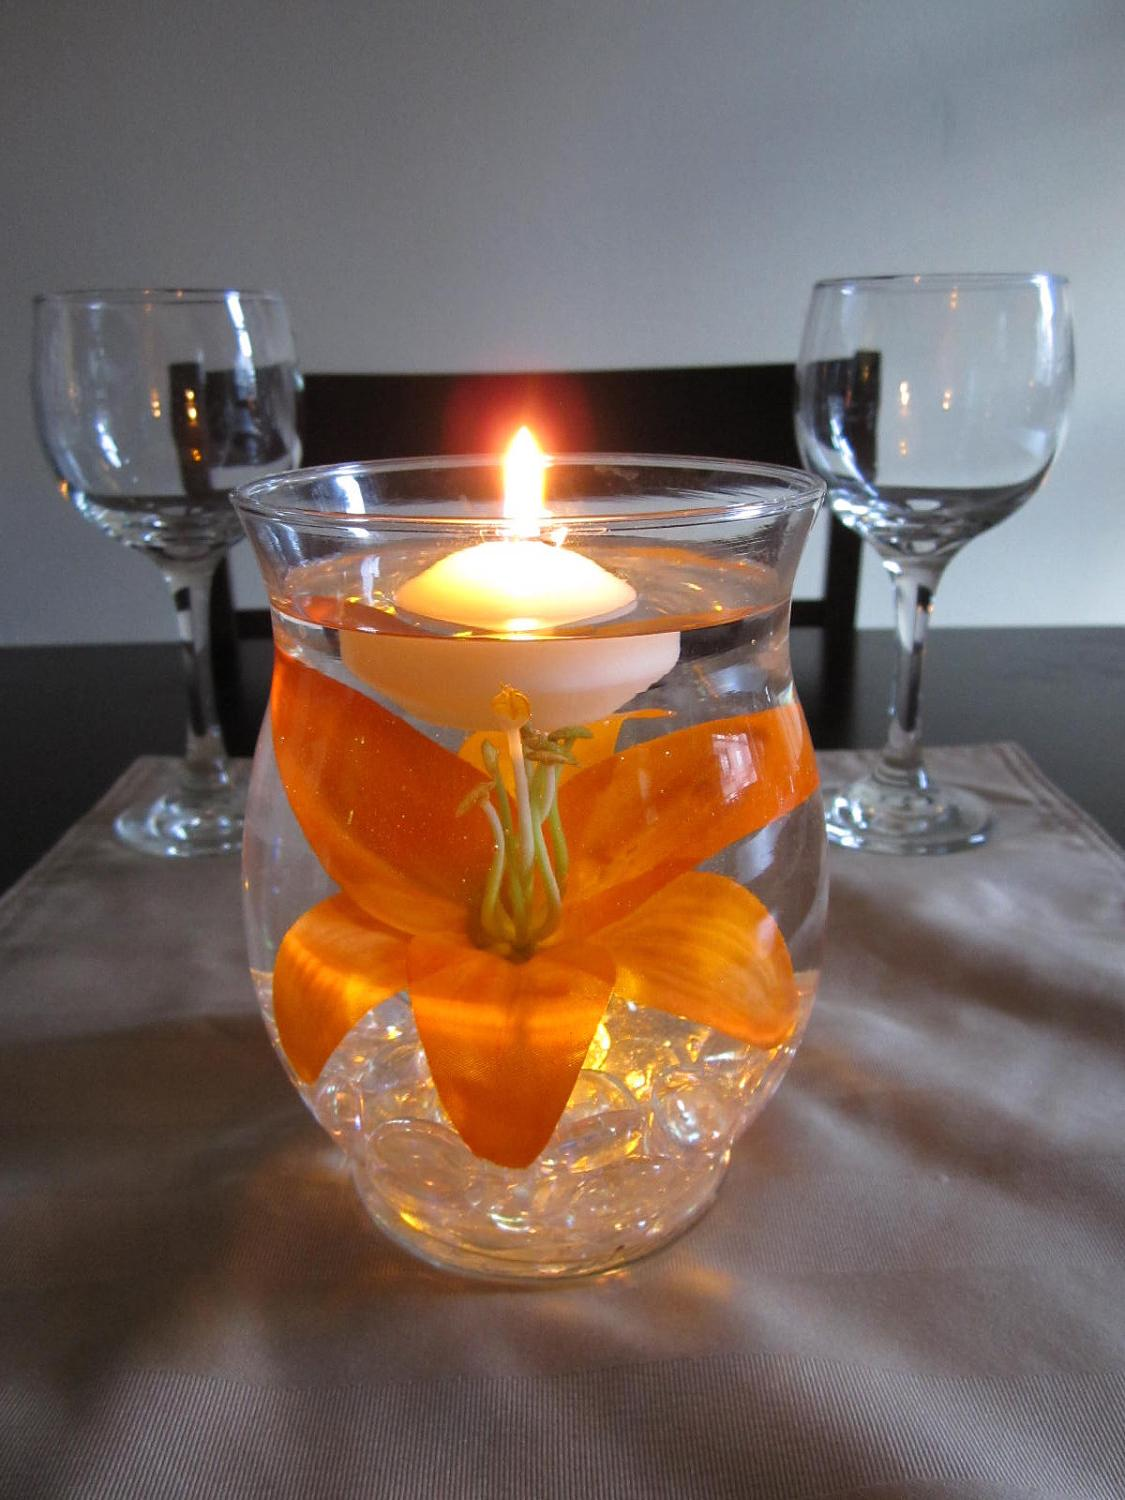 15  Discount Black Friday Cyber Monday - Hurricane Vase Floating Candle